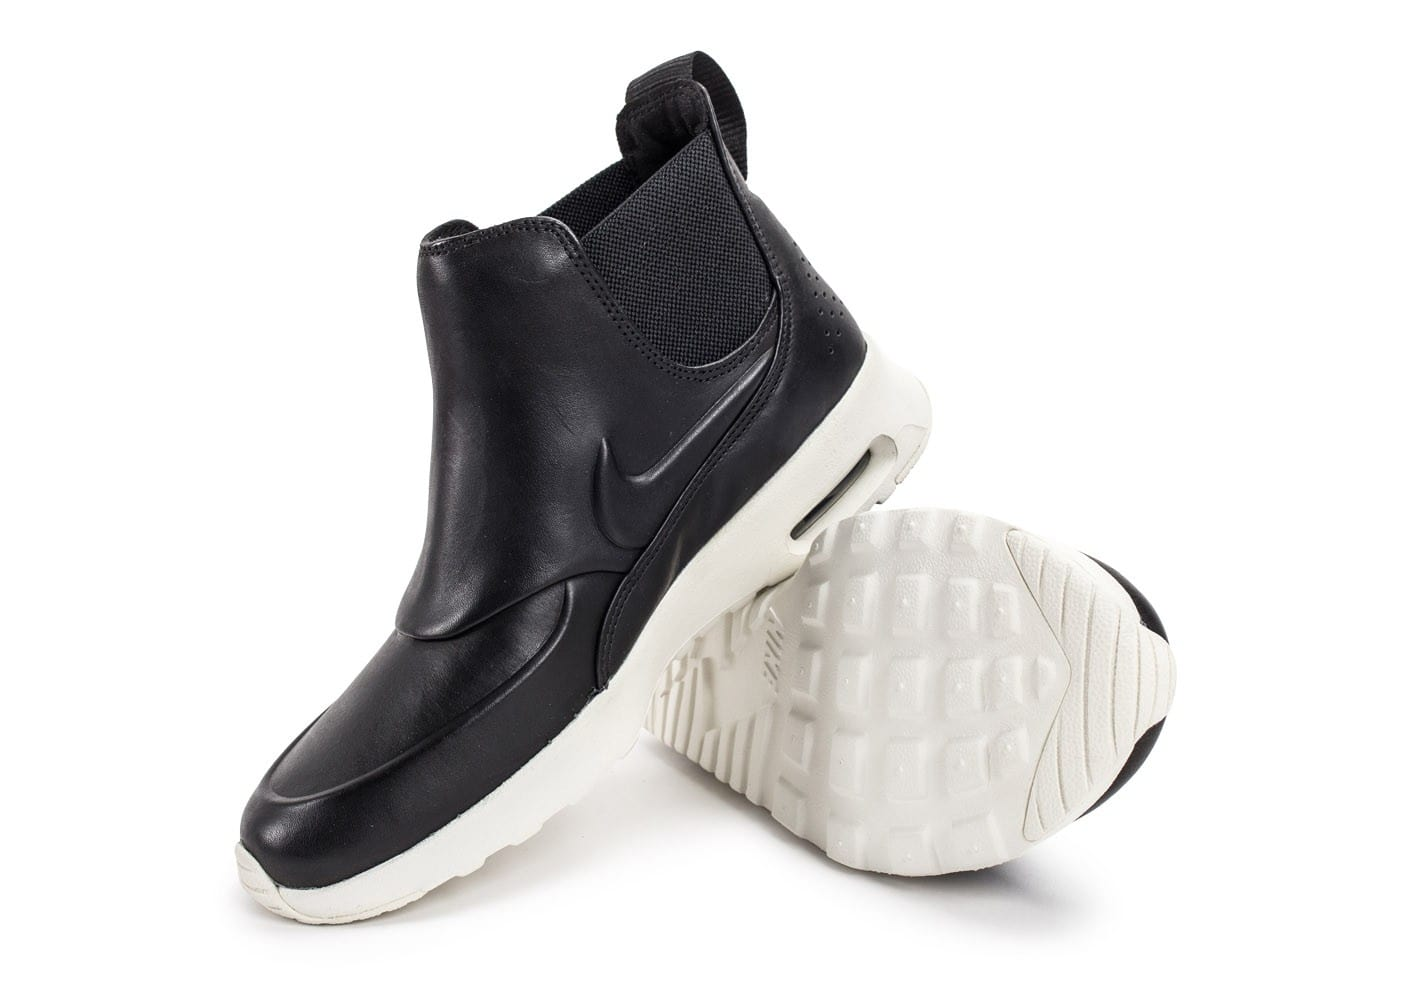 brand new 0eb35 18c68 Chaussures Nike Air Max Thea Mid noire vue avant . ...